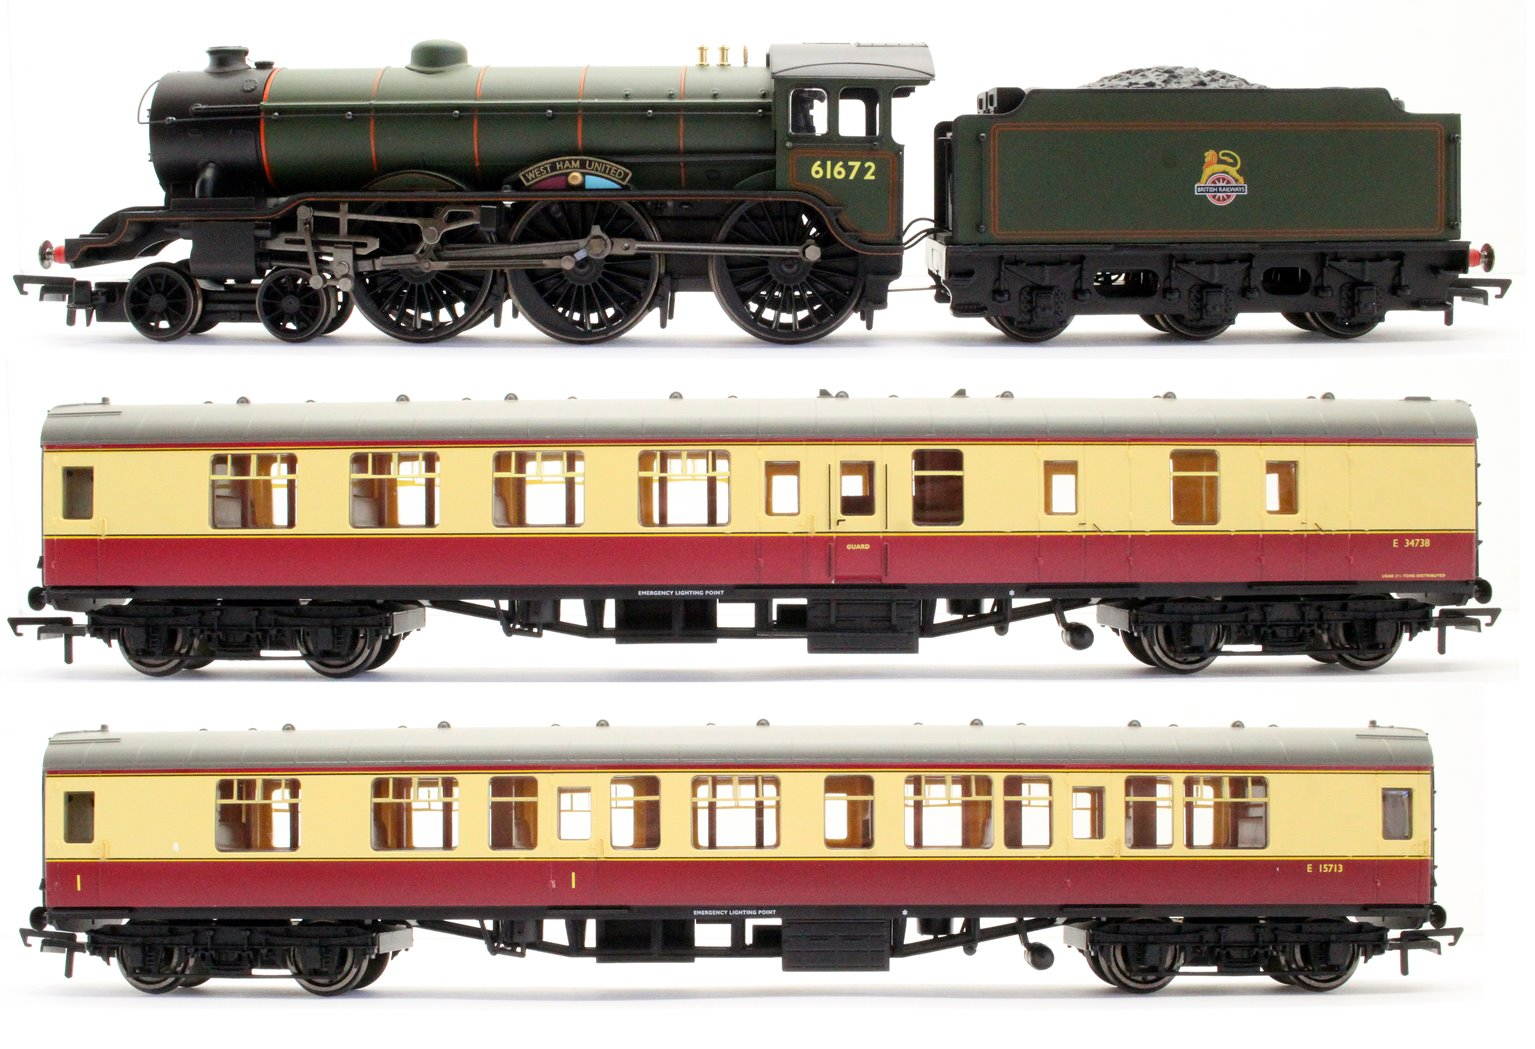 East Coast Express Train Set